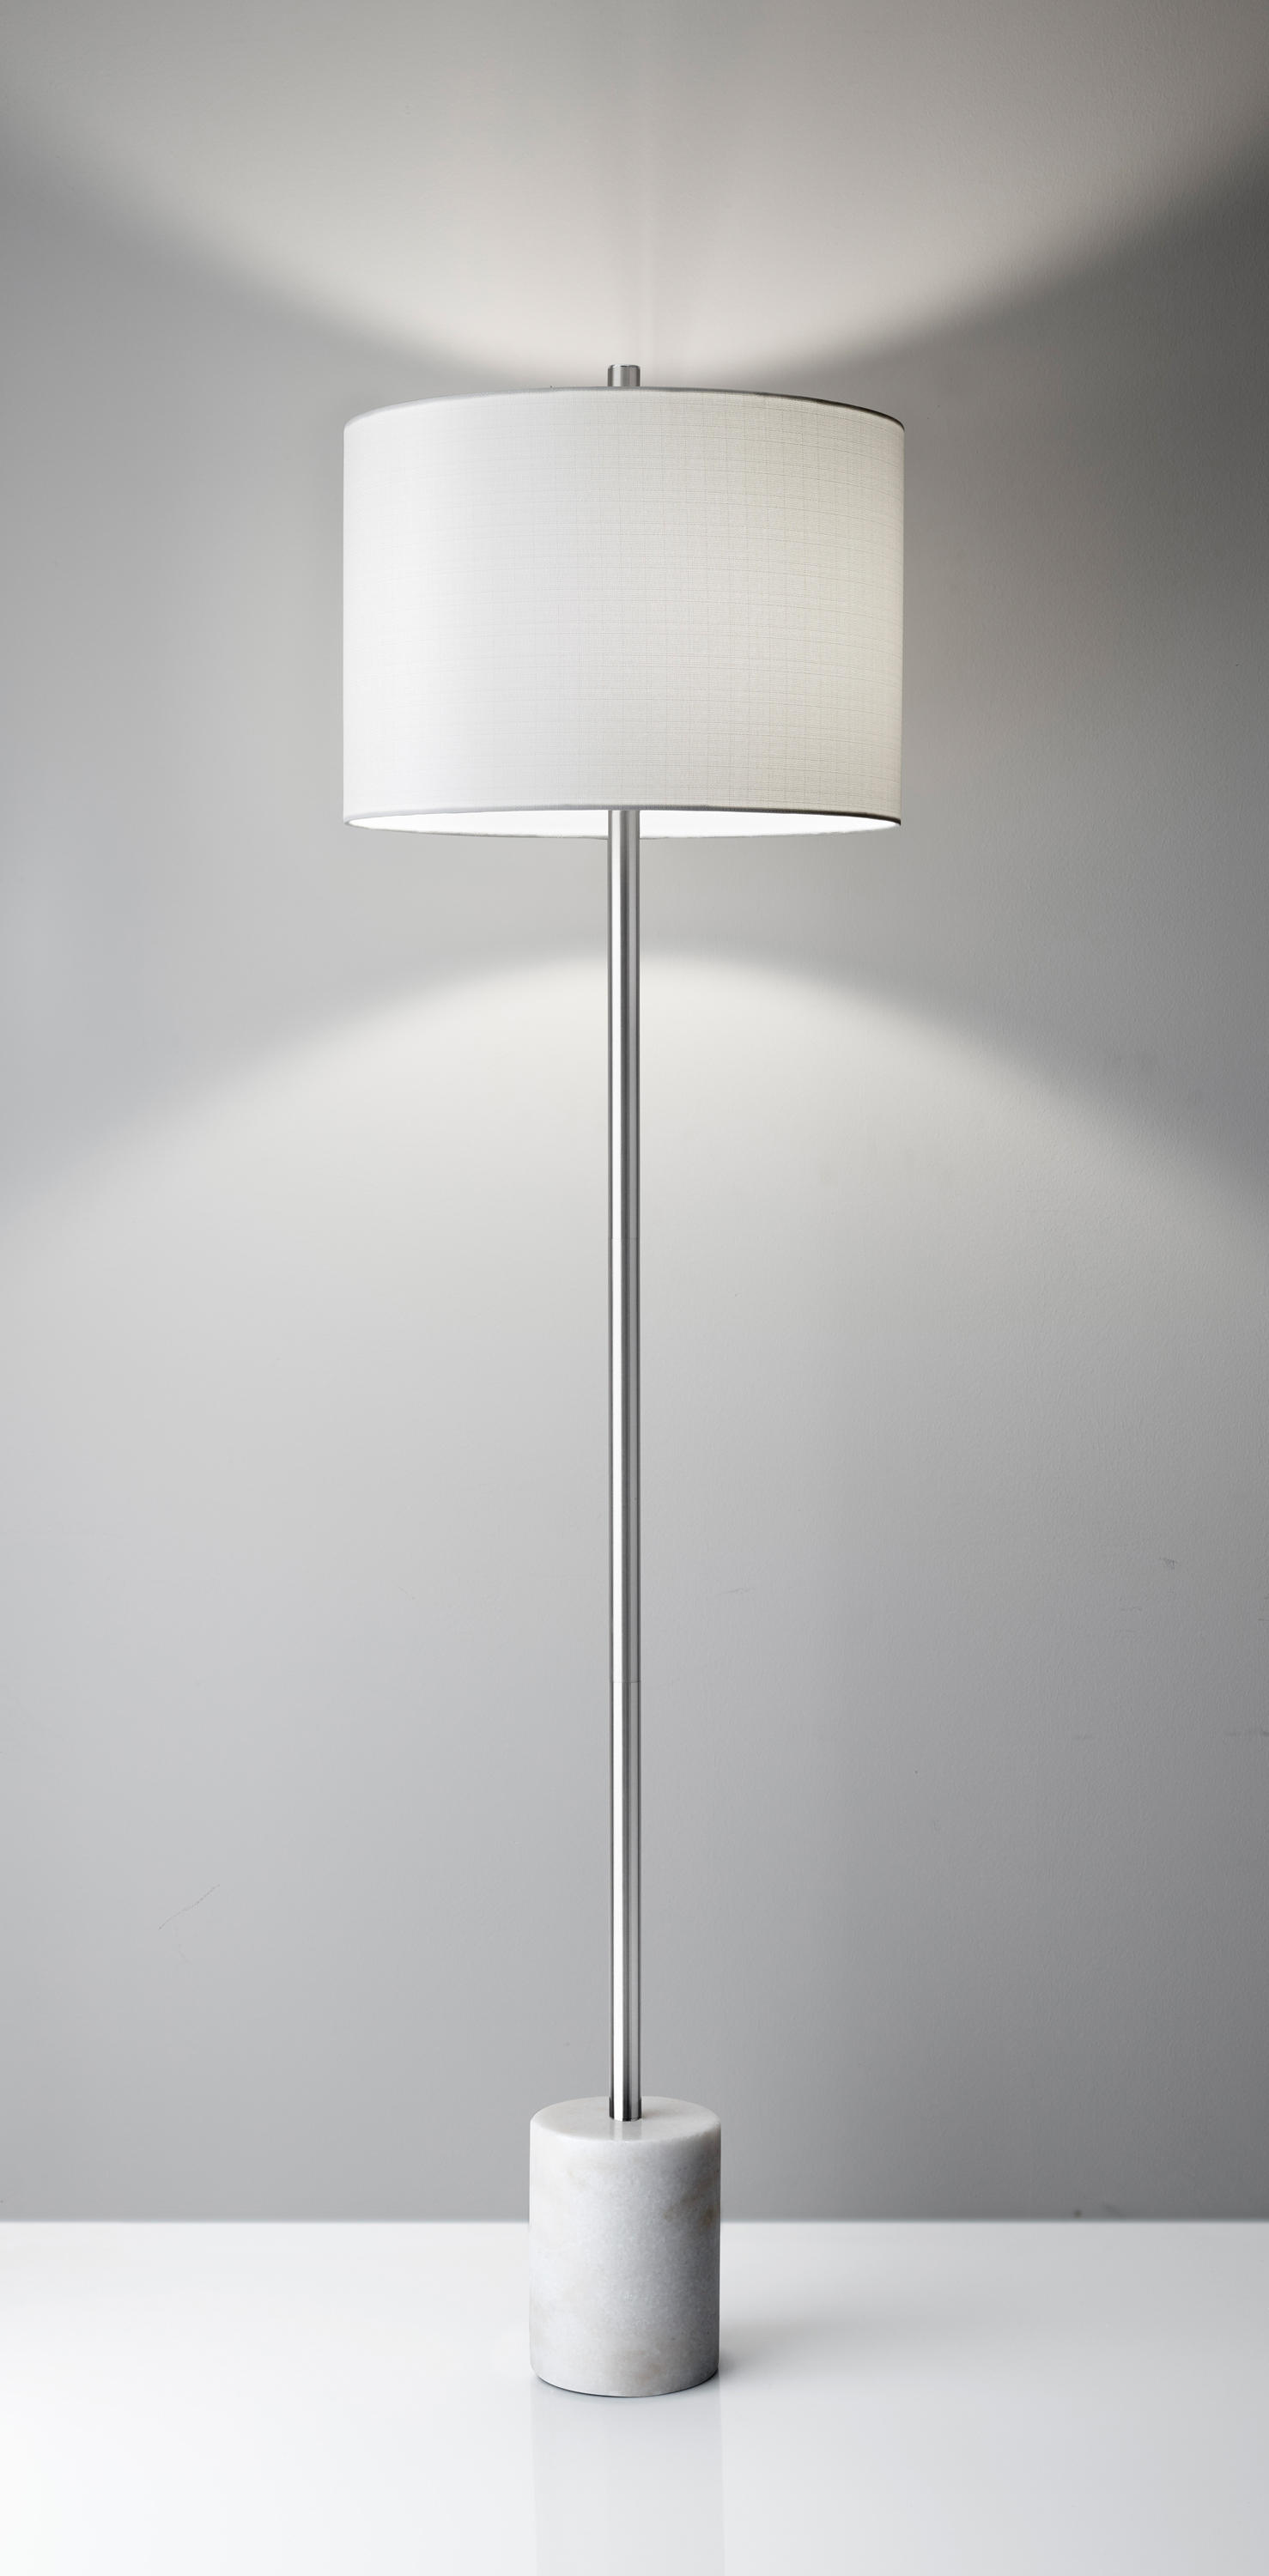 Ambient Floor Lamp Blythe Floor Lamp Free Standing Lights From Ads360